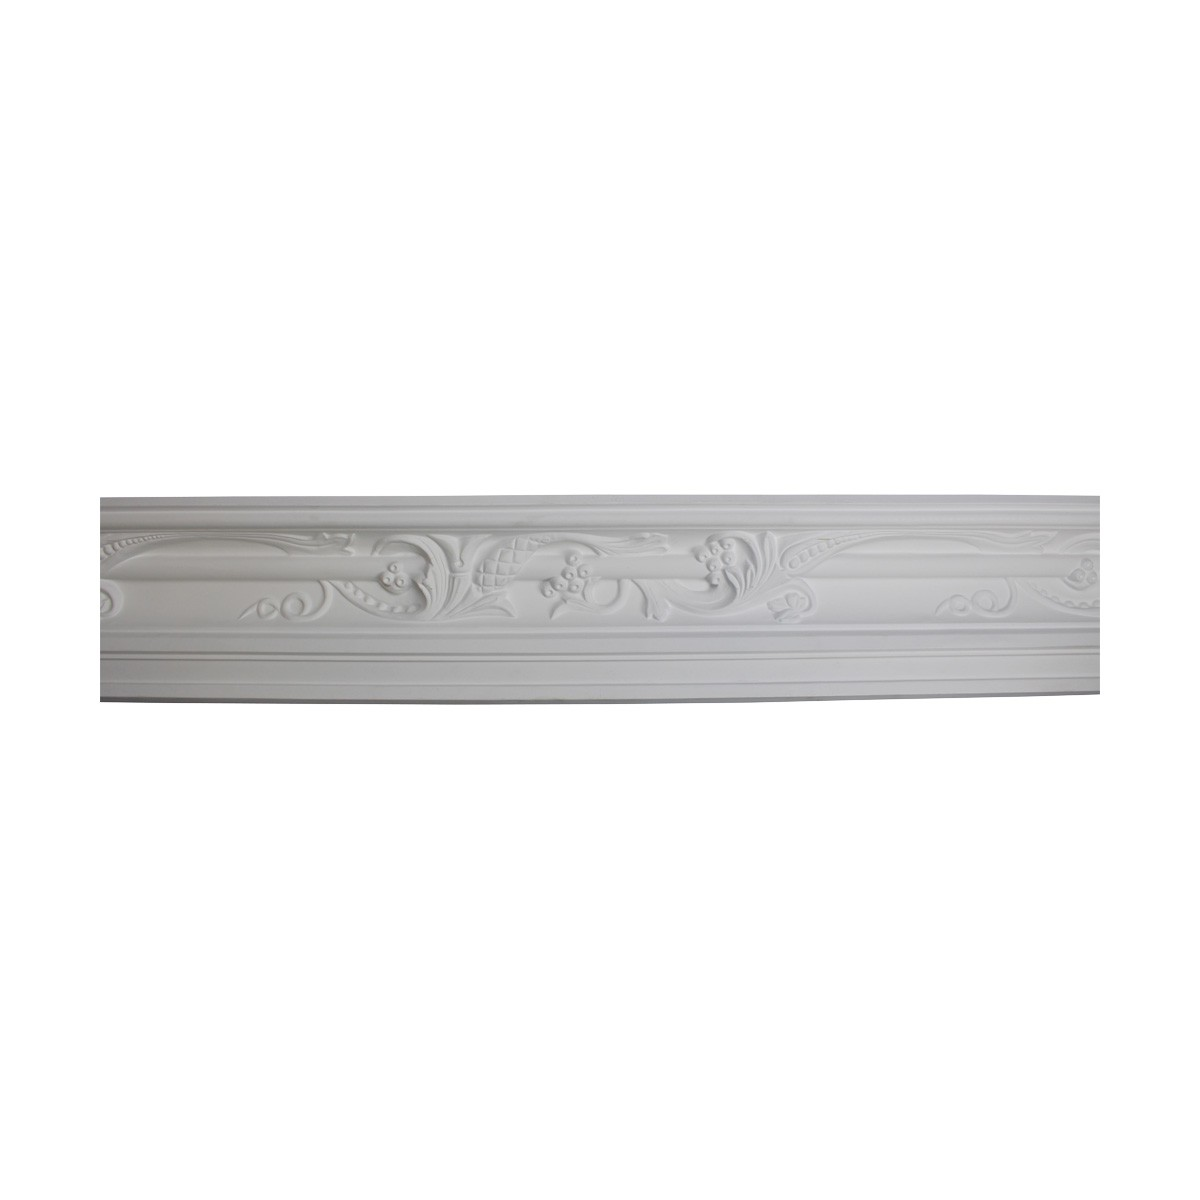 Renovators Supply Cornice White Urethane Julia Ornate Design 6 Pieces Totaling 561 Length White PrePrimed Urethane Crown Cornice Molding Cornice Crown Home Depot Ekena Millwork Molding Wall Ceiling Corner Cornice Crown Cove Molding